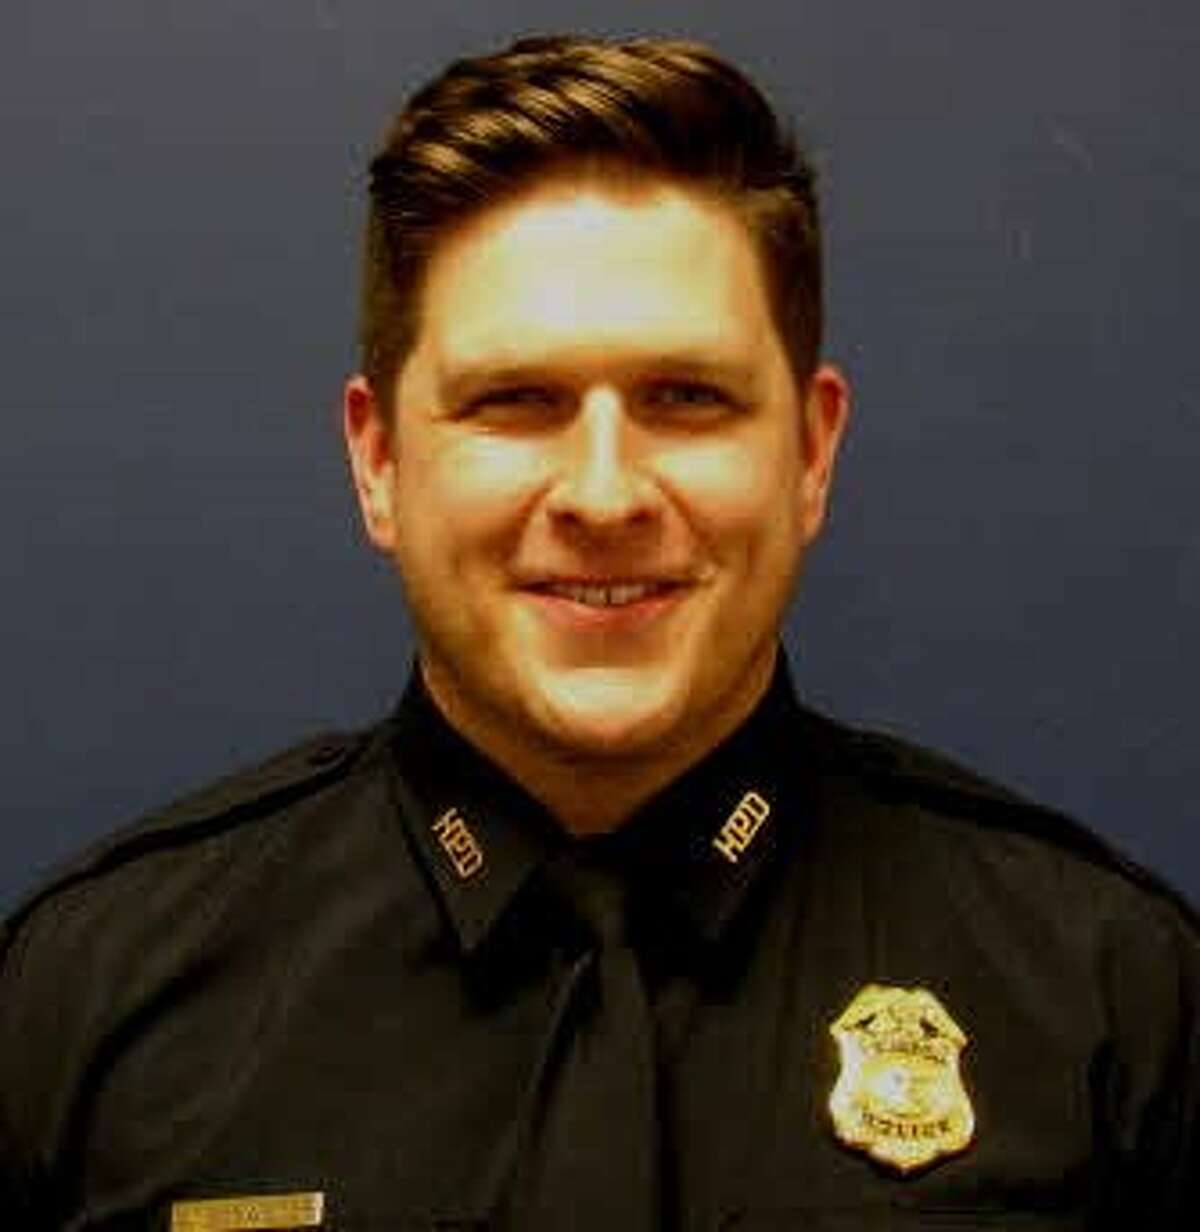 Sergeant Christopher Brewster, 32. Brewster was shot and killed during a domestic disturbance near Magnolia Park in east Houston Saturday, Dec. 7, 2019.